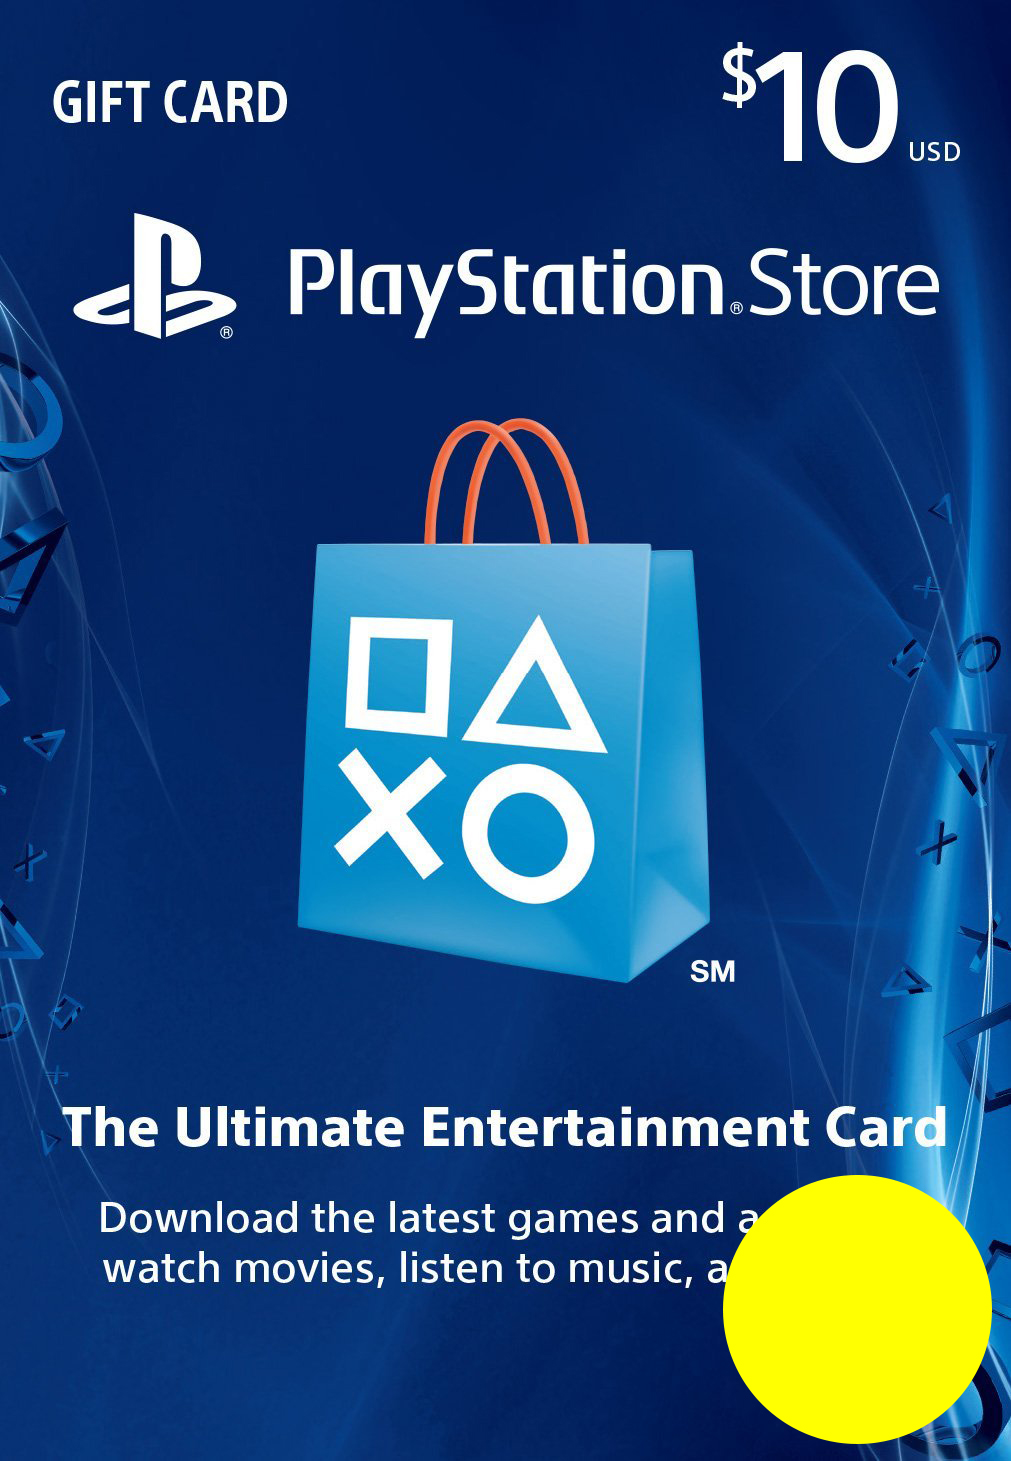 PSN Gift Card Code USA $10 PS4, PS3, PS Vita